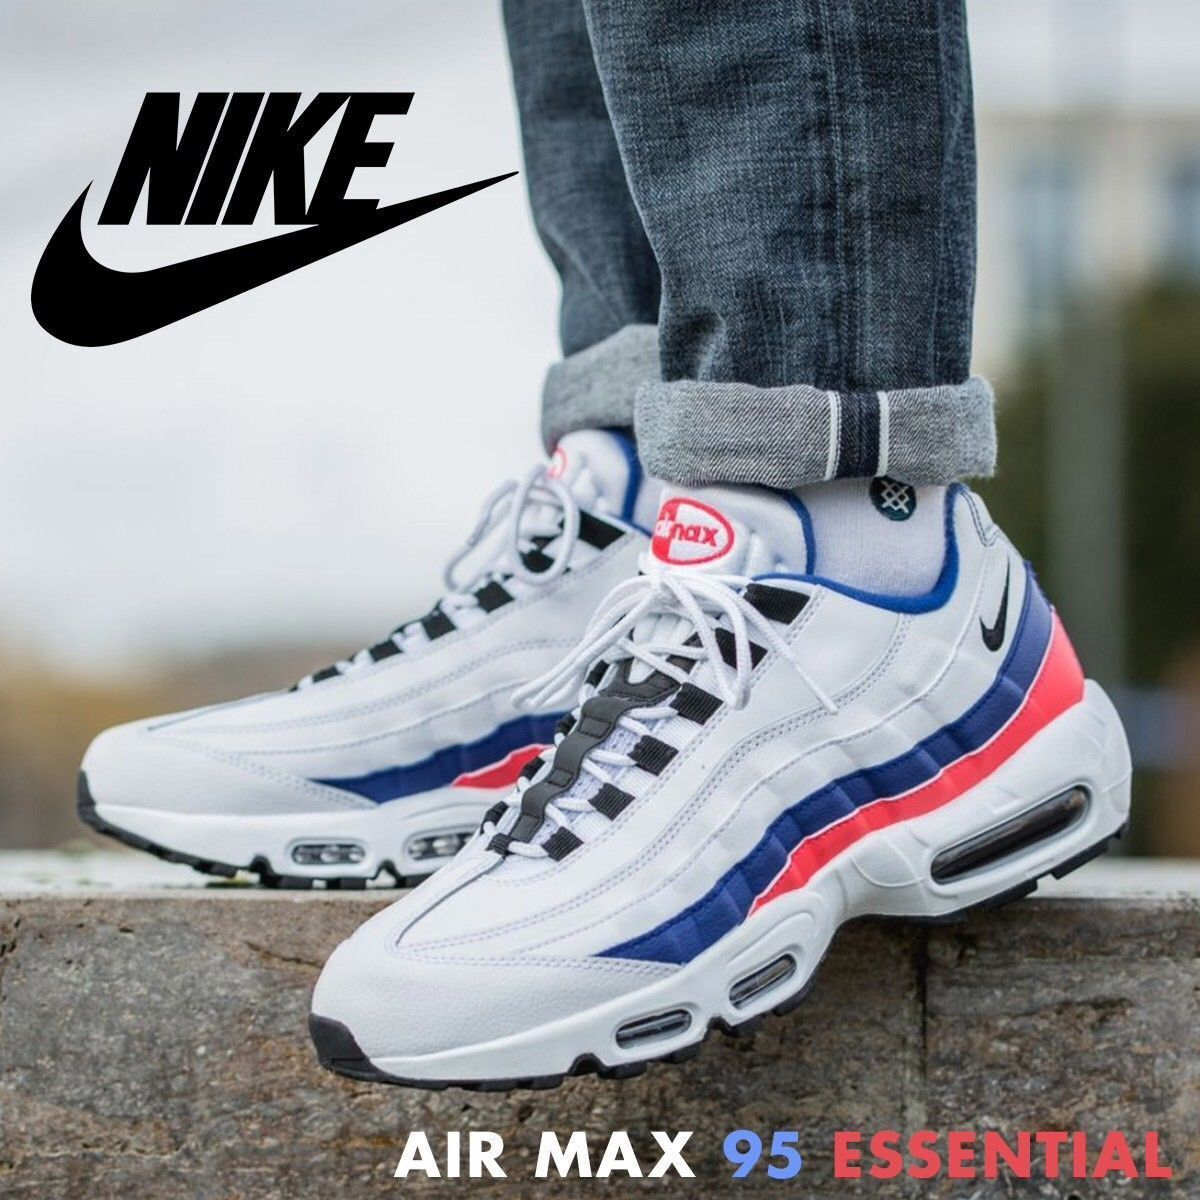 Details about Nike Air Max 95 Essential Men's Ultramarine Solar Red Shoes  (749766-106) Size 13